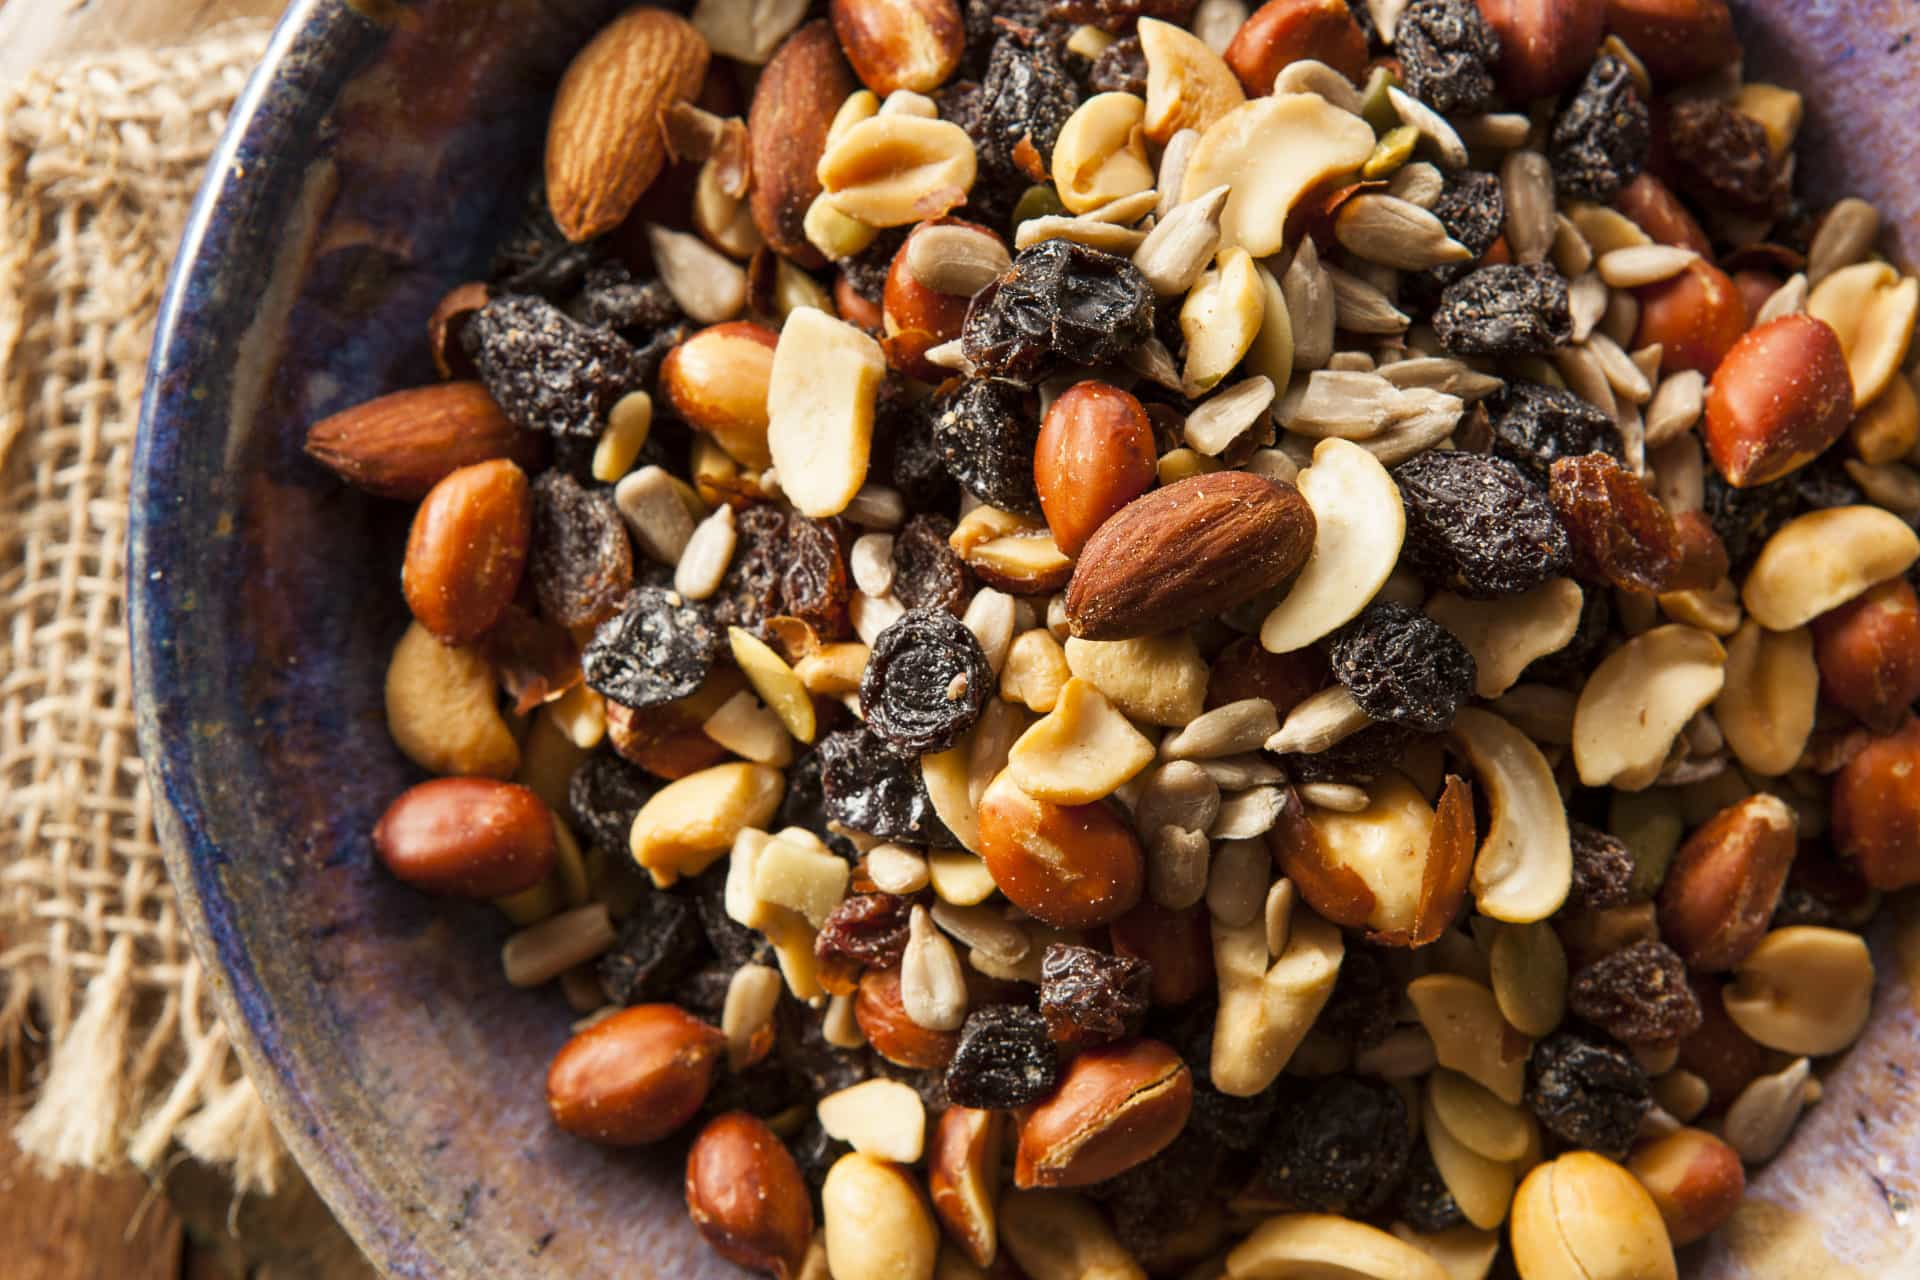 Tasty travel snacks that are healthy and hassle-free